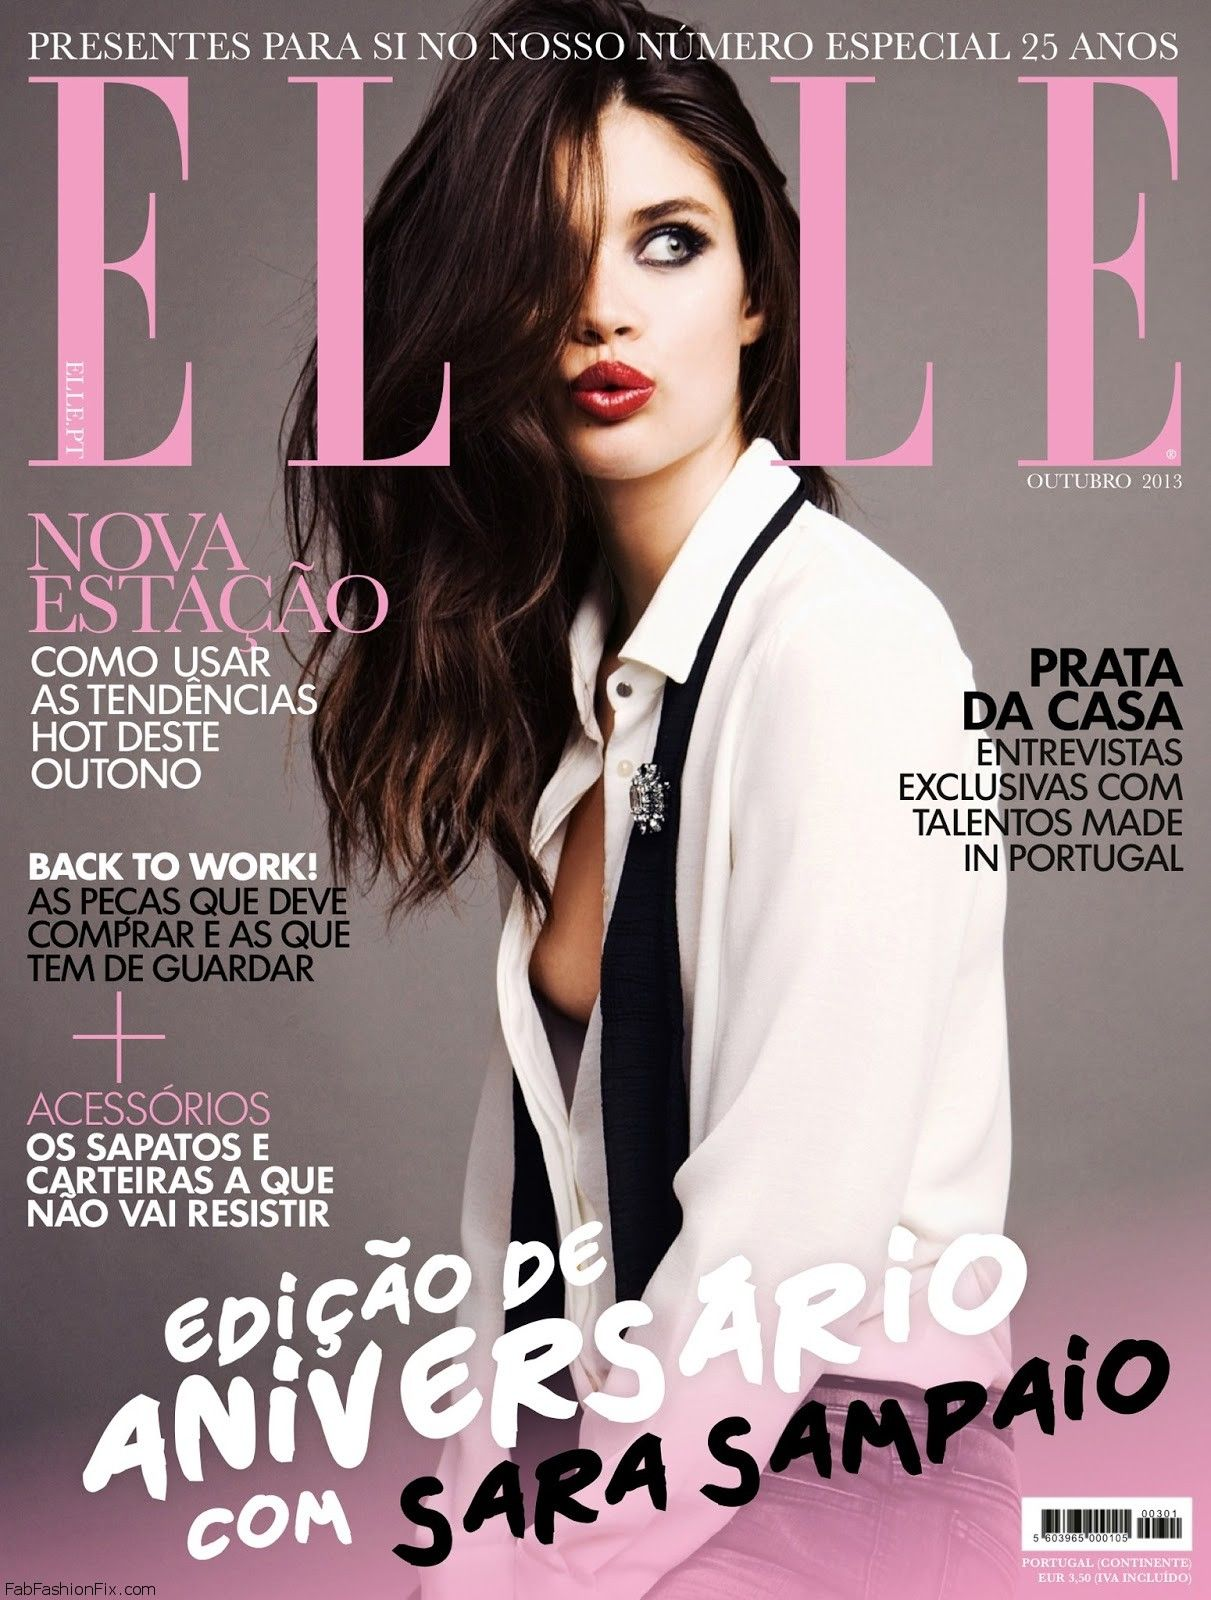 fashion_scans_remastered-sara_sampaio-elle_portugal-october_2013-scanned_by_vampirehorde-hq-1